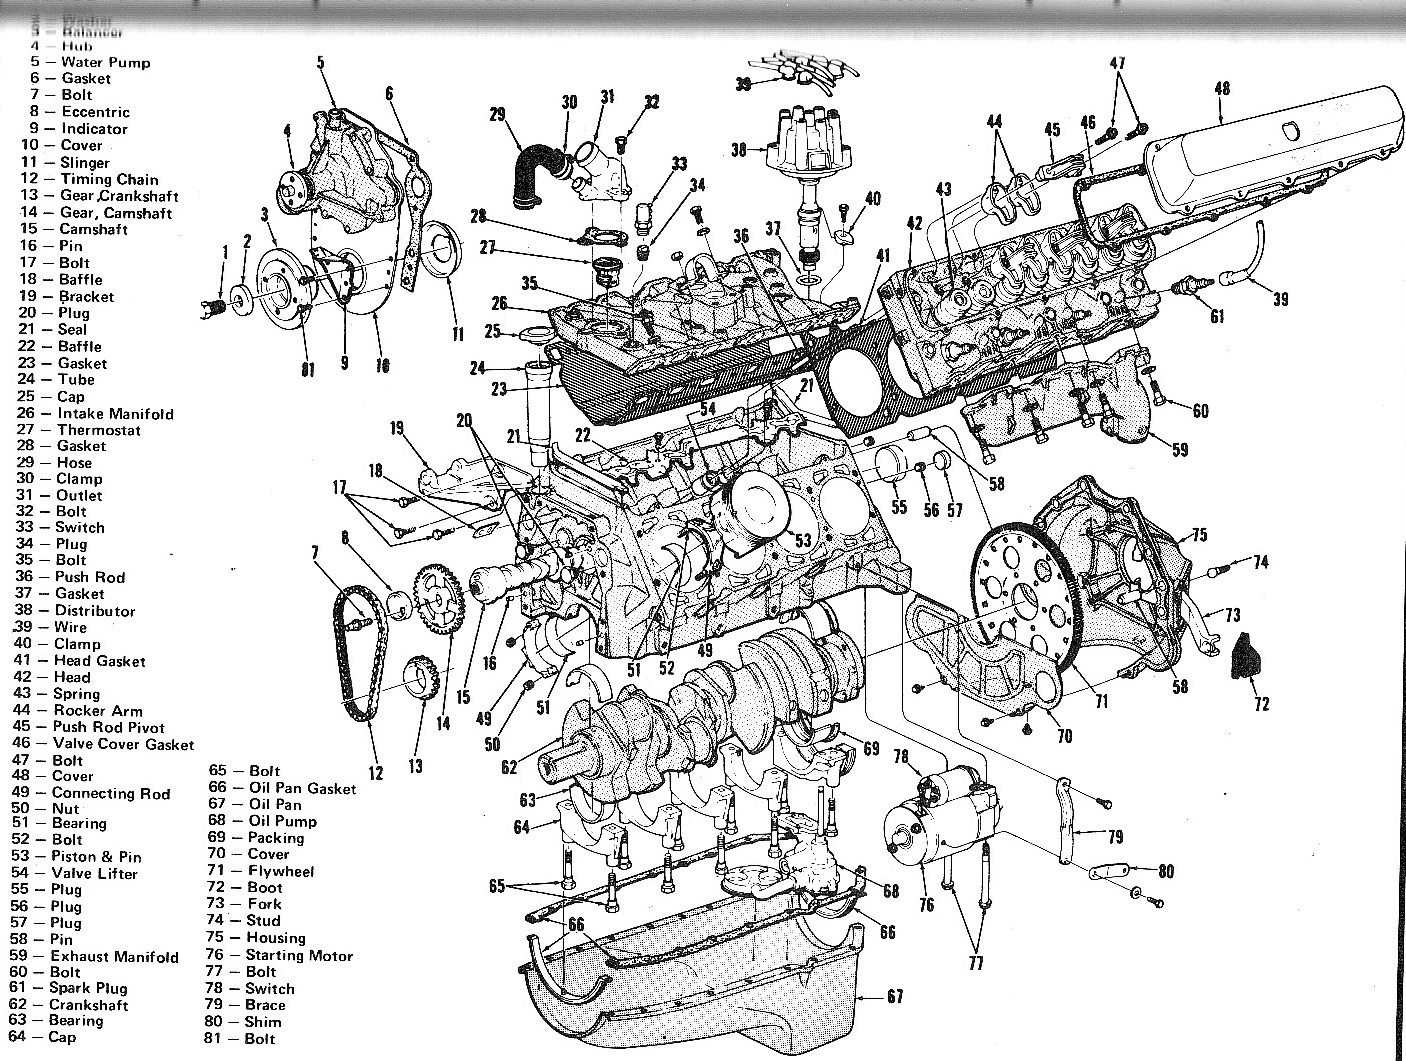 medium resolution of 2000 oldsmobile engine diagram electrical wiring diagram 2000 oldsmobile engine diagram